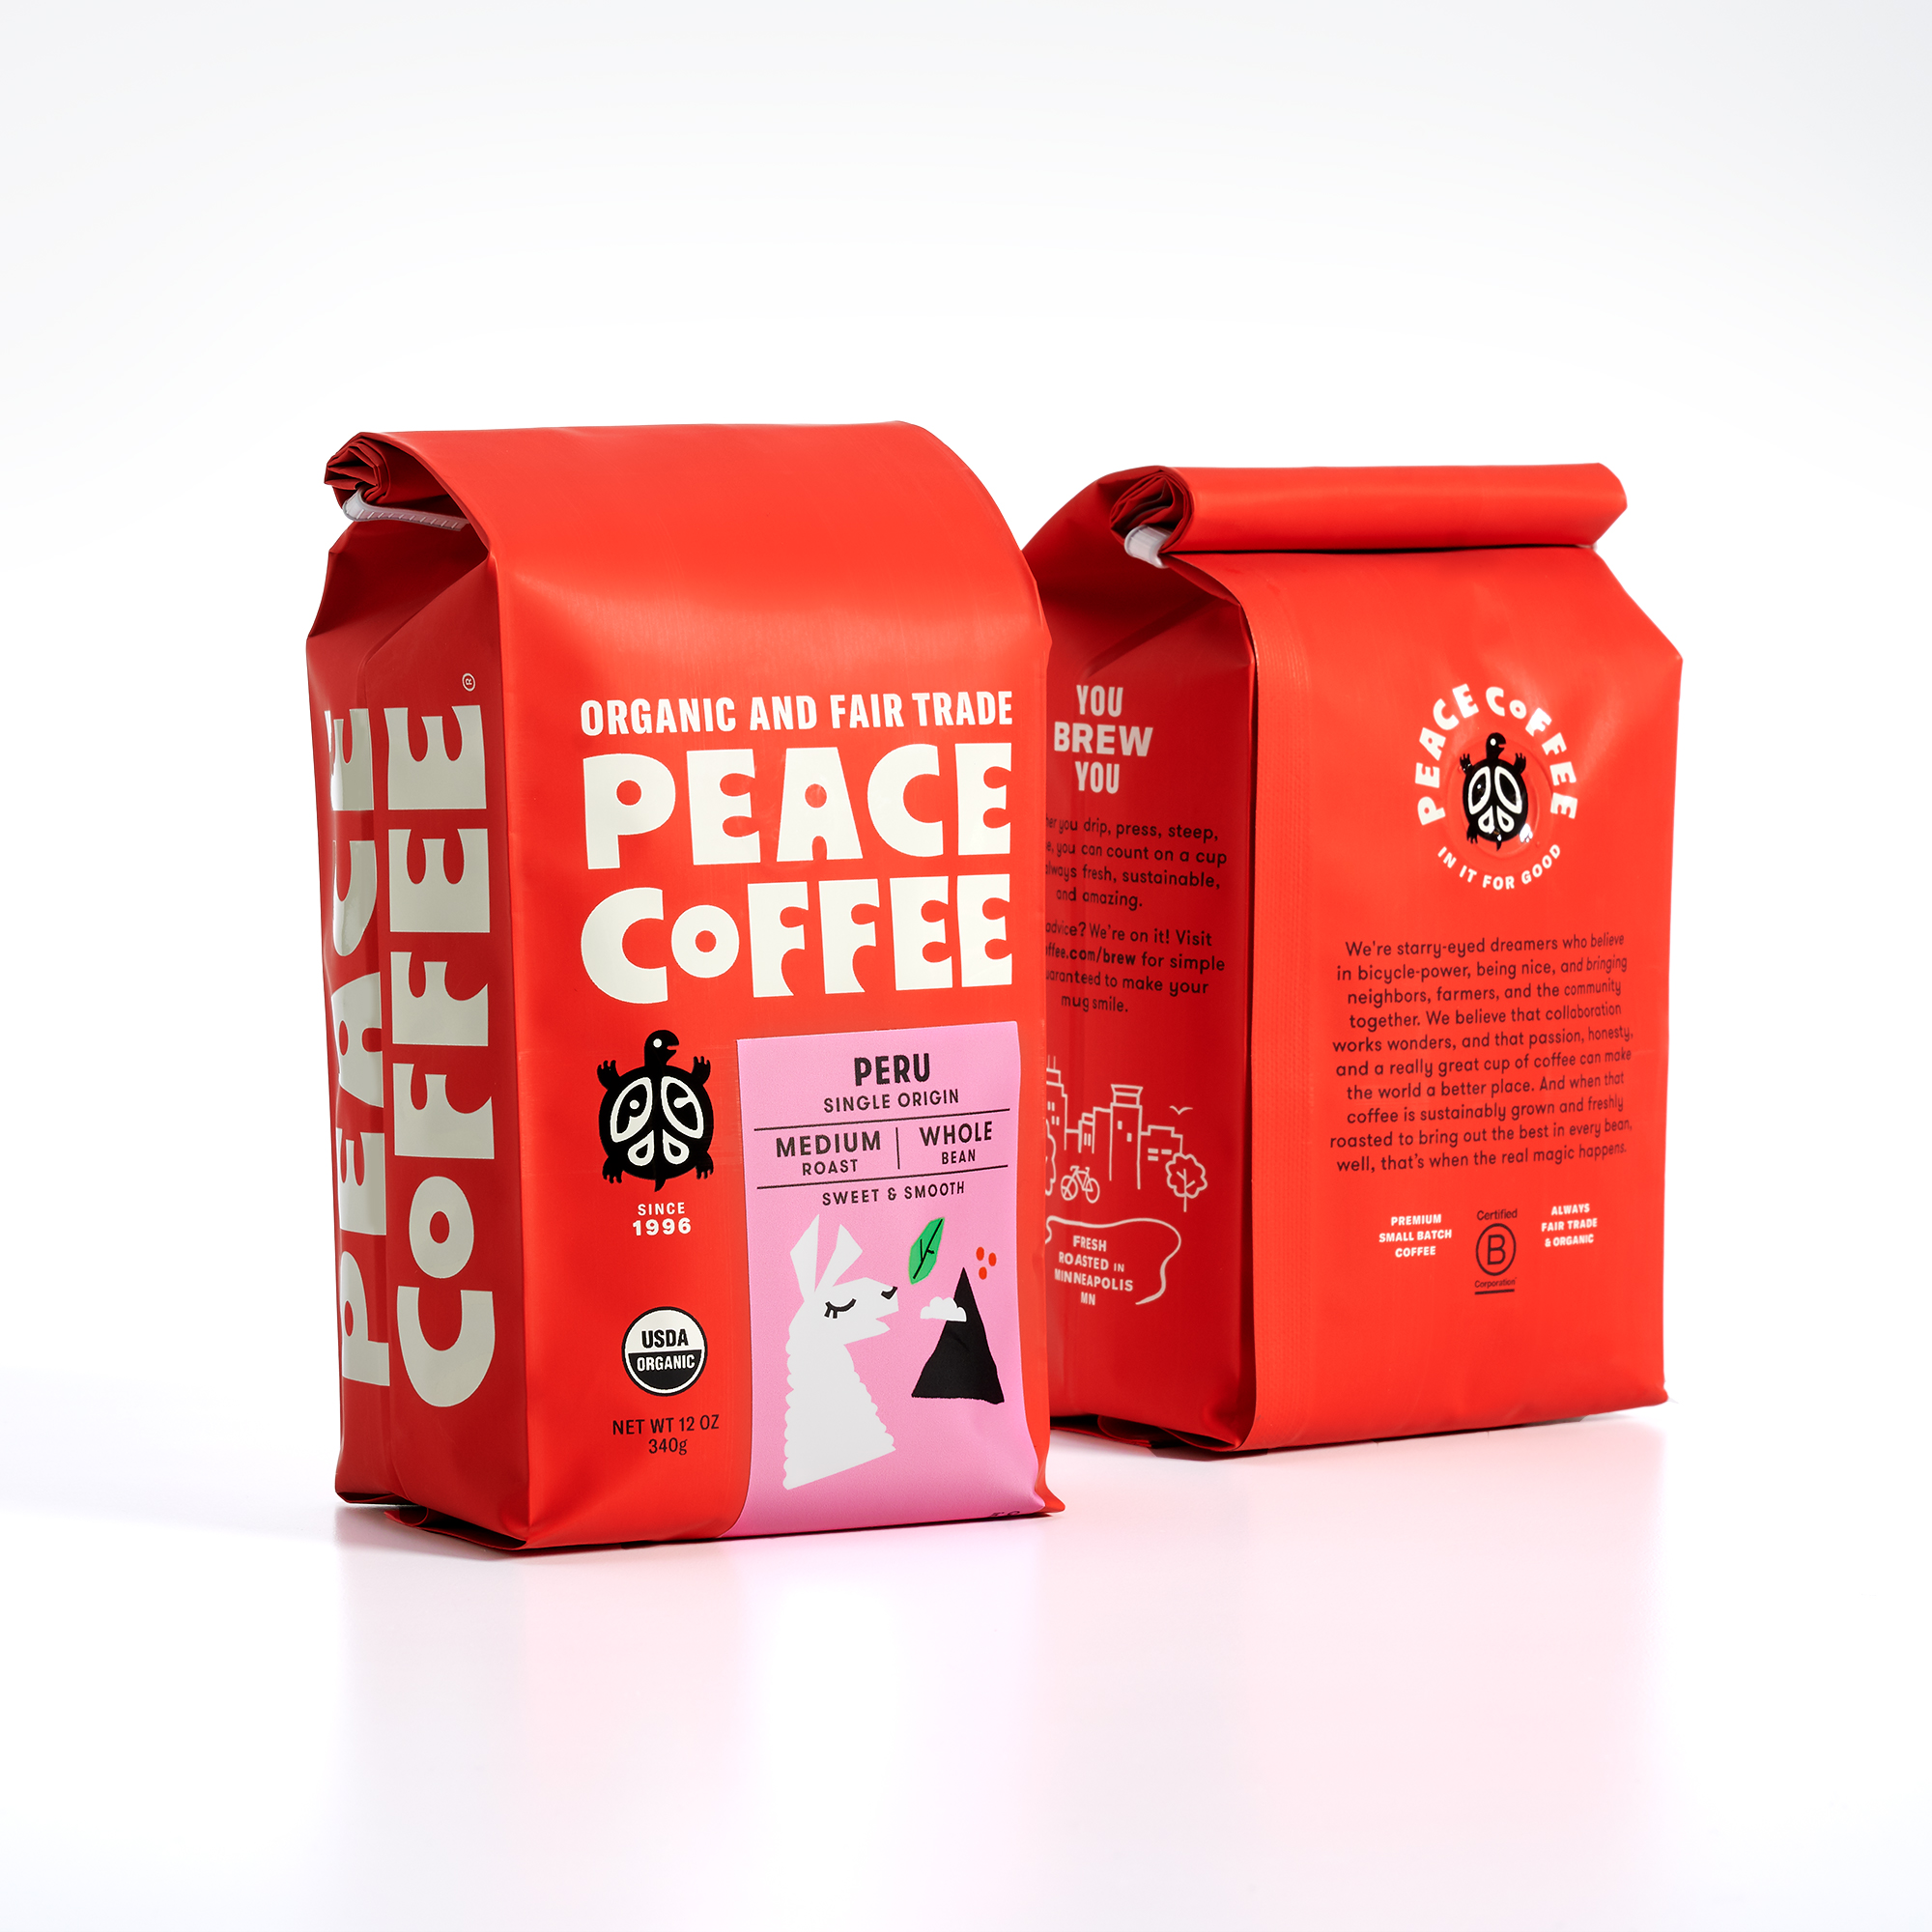 New Peace Coffee branding designed by Abby Haddican Studio, a Minneapolis-based design consultancy.